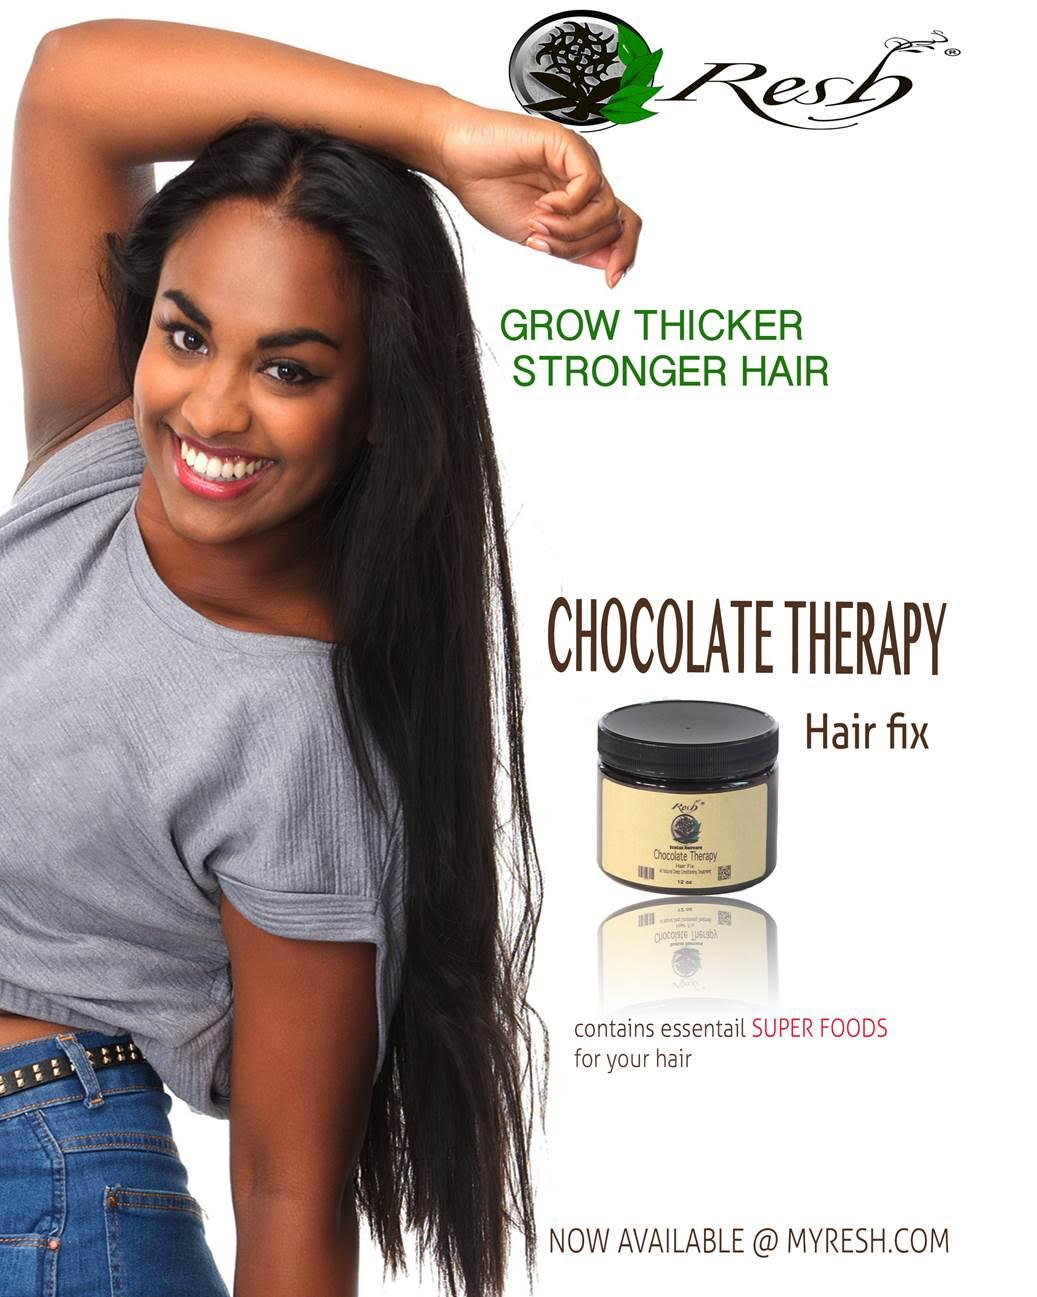 Chocolate Therapy Hair Fix, The Resh Store